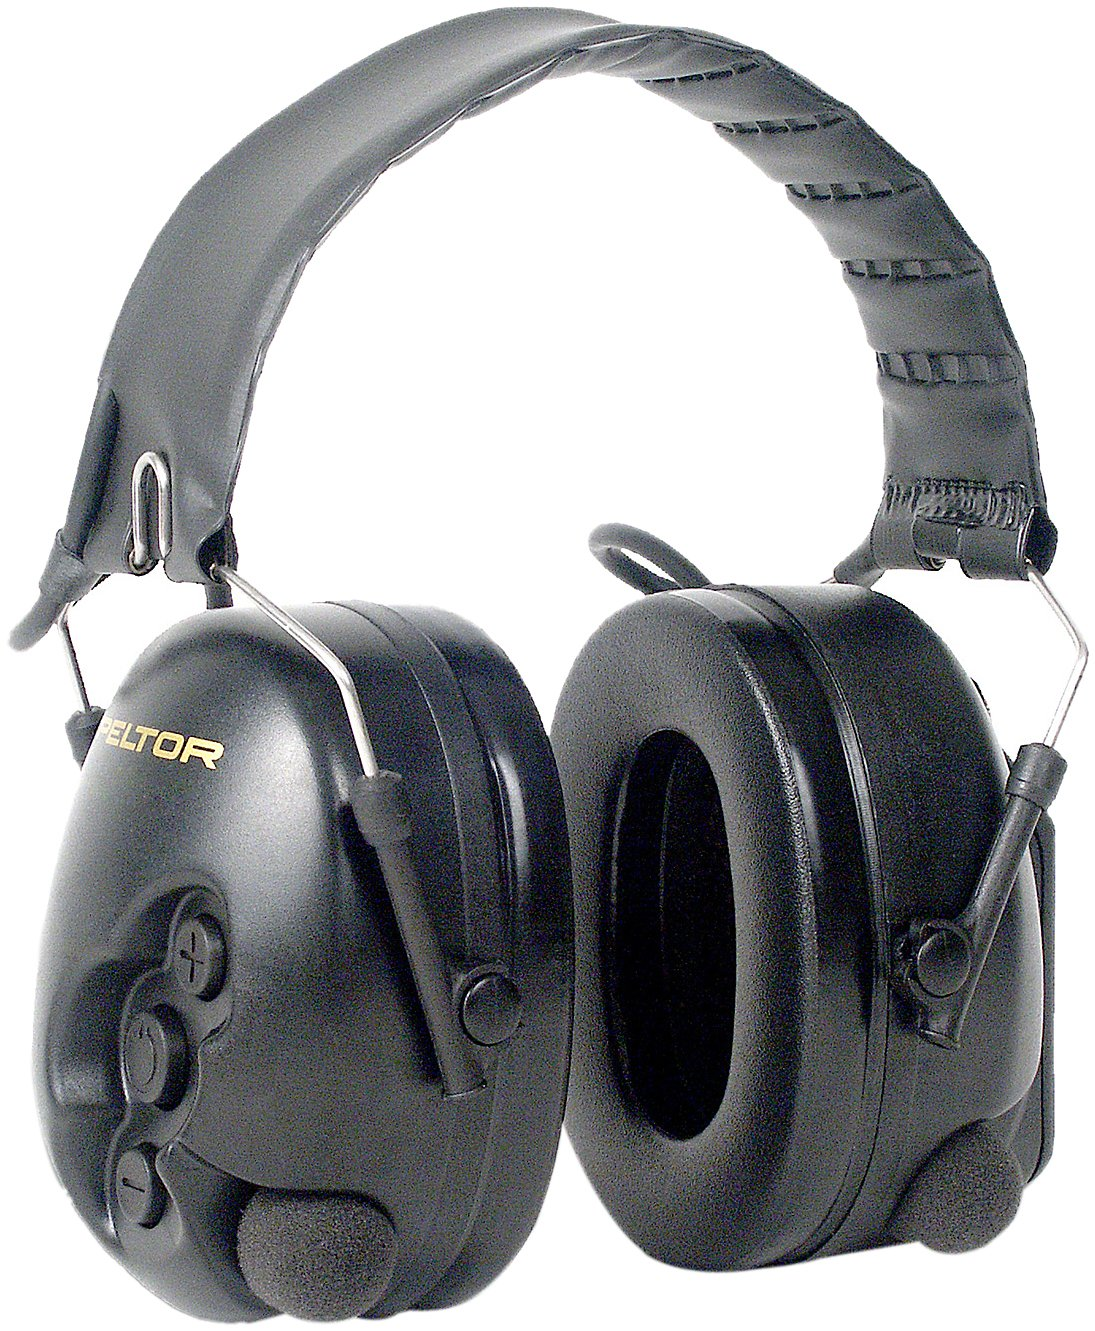 3M MT15H7F SV Over Head Headset, 26dB, Black (Case of 1)